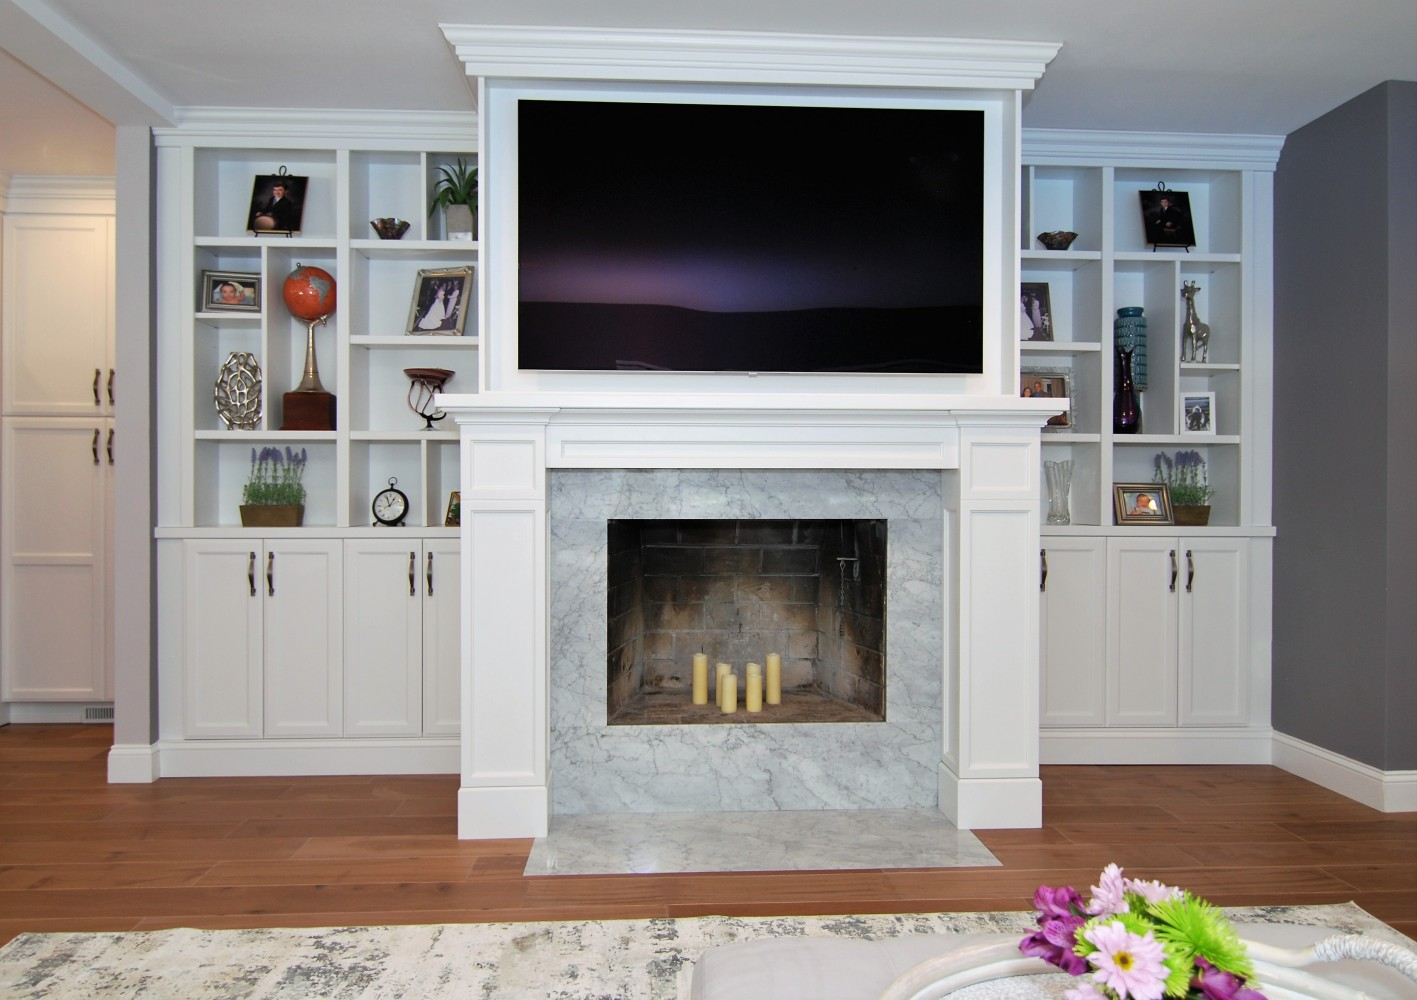 Fireplace Custom Built in | Cranbury NJ | Distinctive Interior Designs